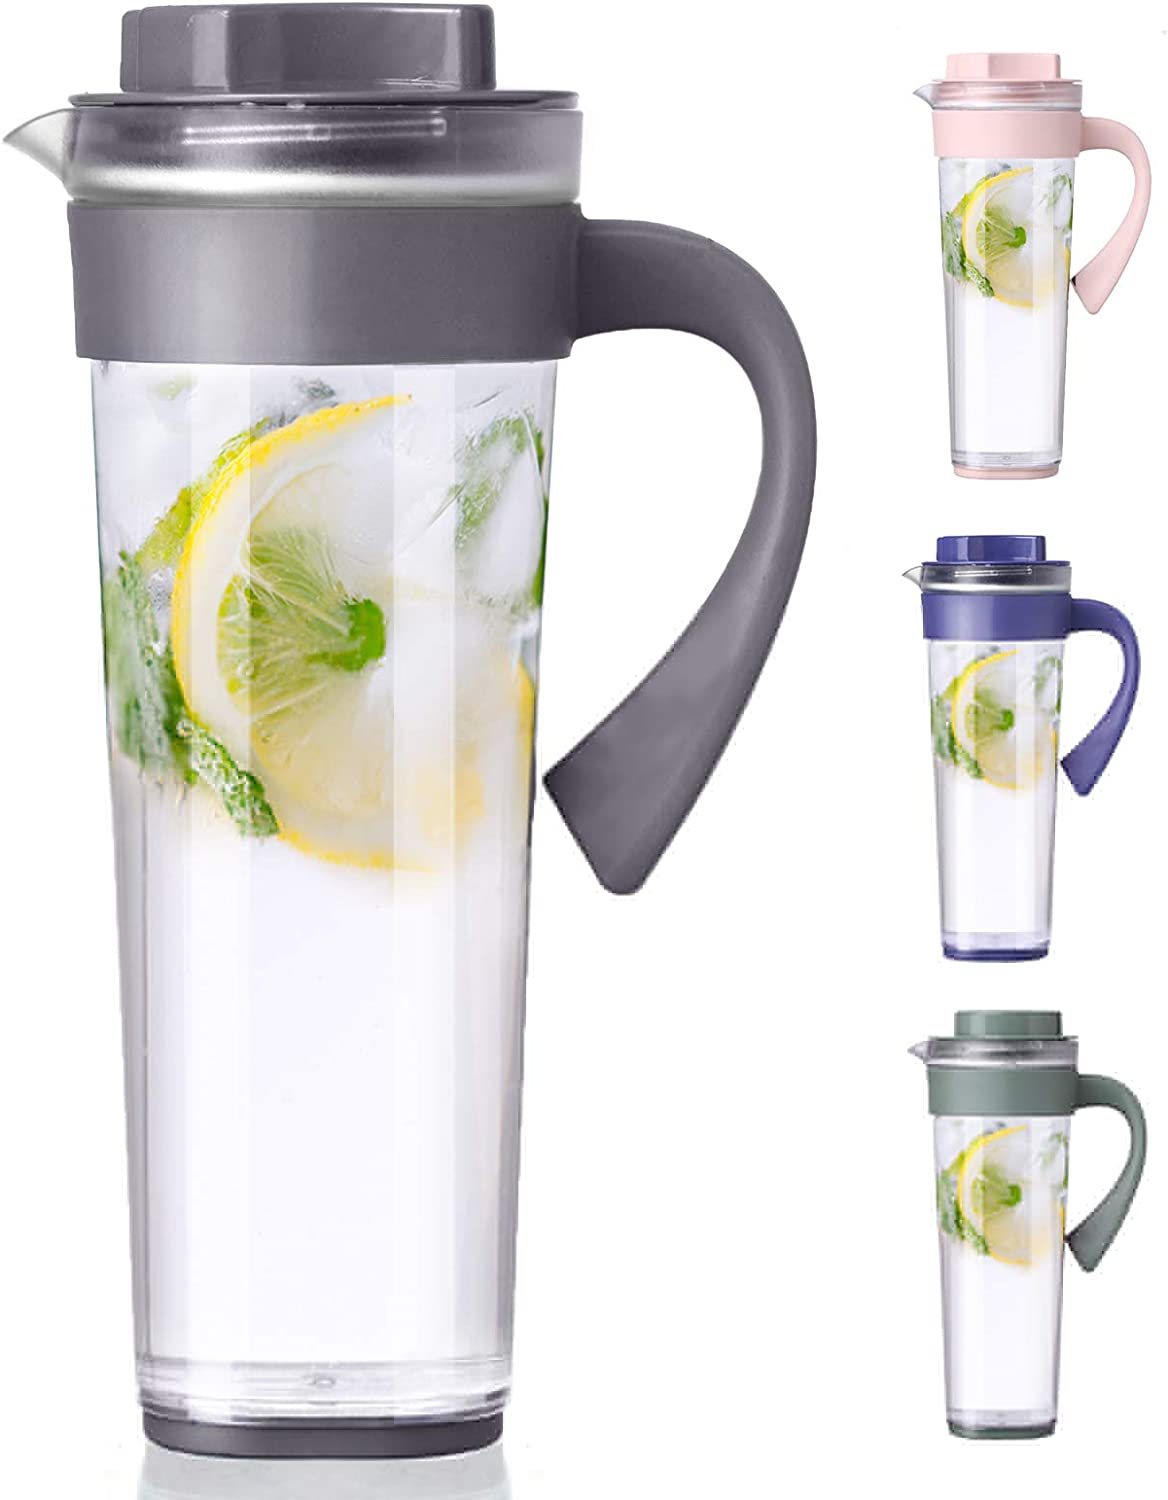 Plastic Pitcher,Lemonade Pitcher,Ice Tea Pitcher,Premium Quality Plastic Water Pitcher,for Hot and Cold Water, Drinks, Wine, Tea, Coffee,Ice Lemon Tea and Juice Beverage,1 quart/33 oz,Gray